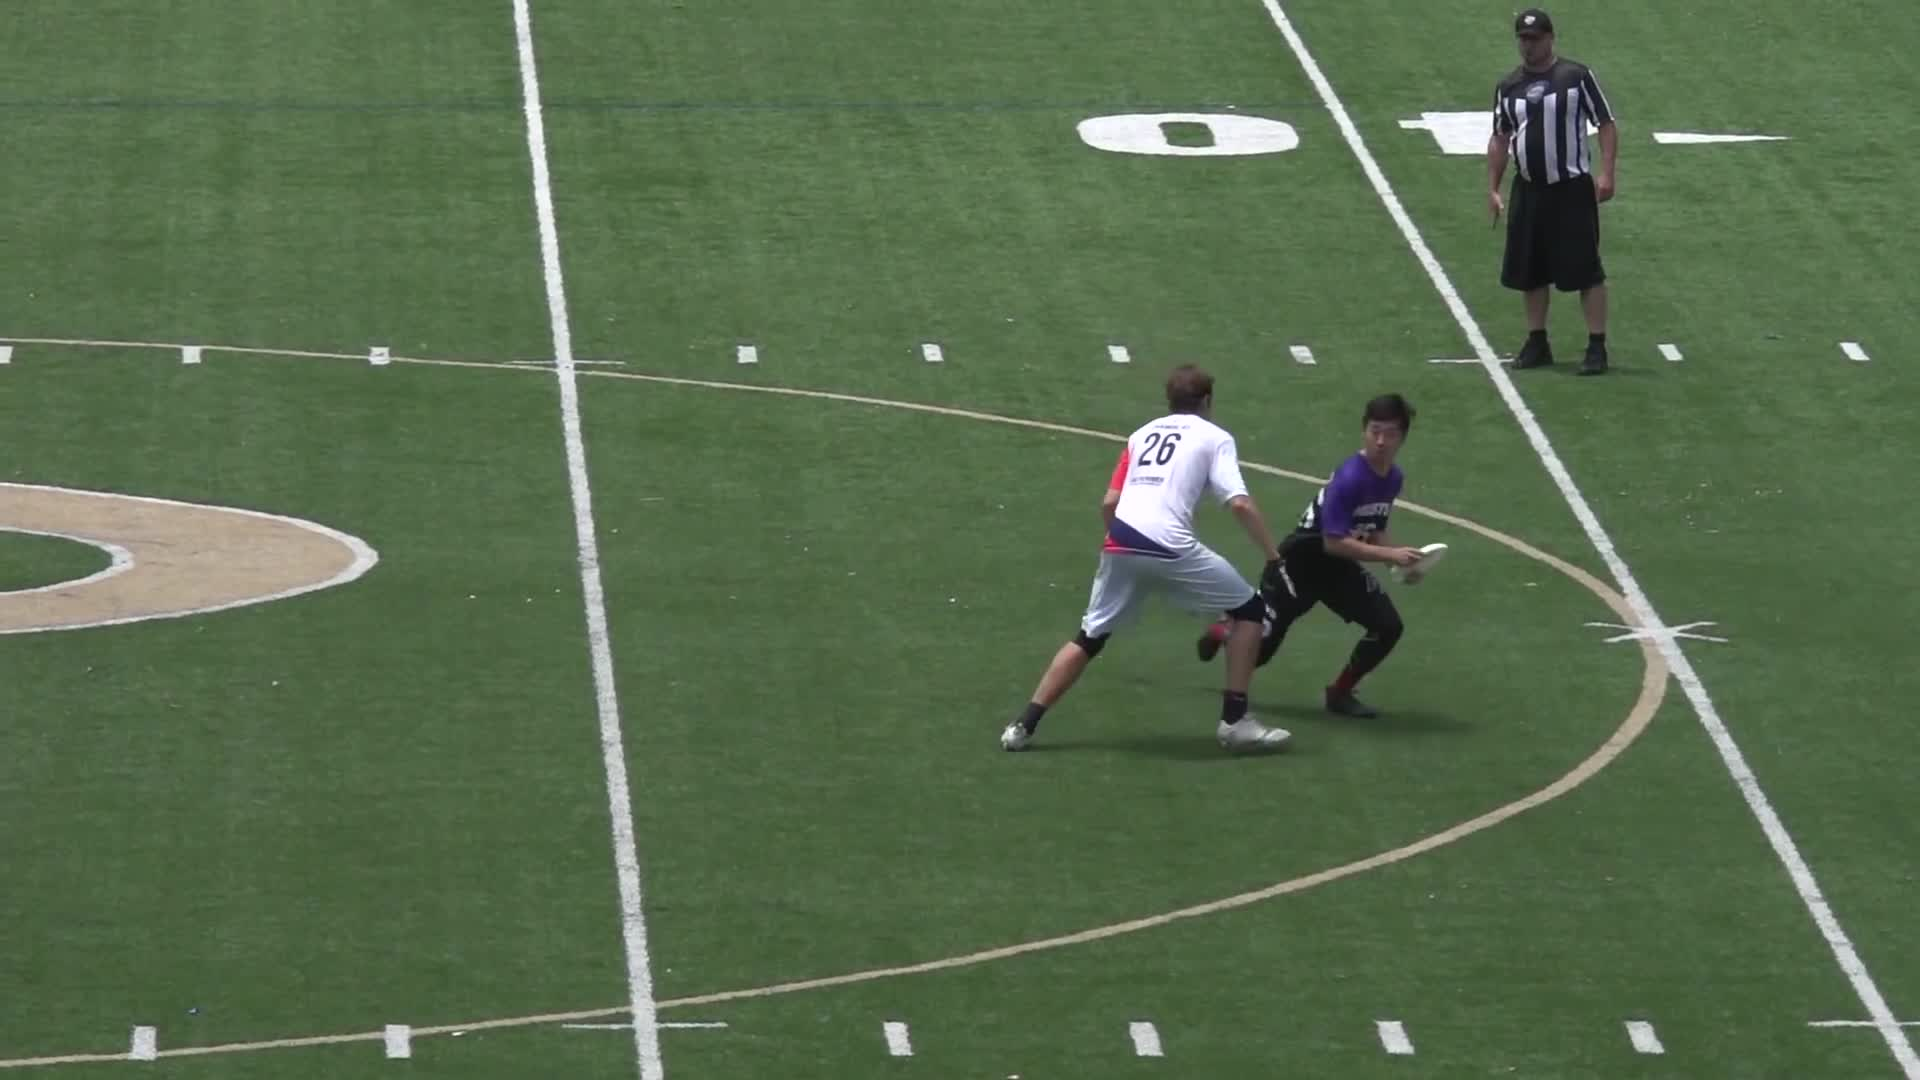 american ultimate disc league, audl, dallas roughnecks, indianapolis alleycats, minnesota wind chill, montreal royal, raleigh flyers, san francisco flamethrowers, top 10, ultimate, ultimate frisbee, Griffin Miller Huge Layout Interception GIFs